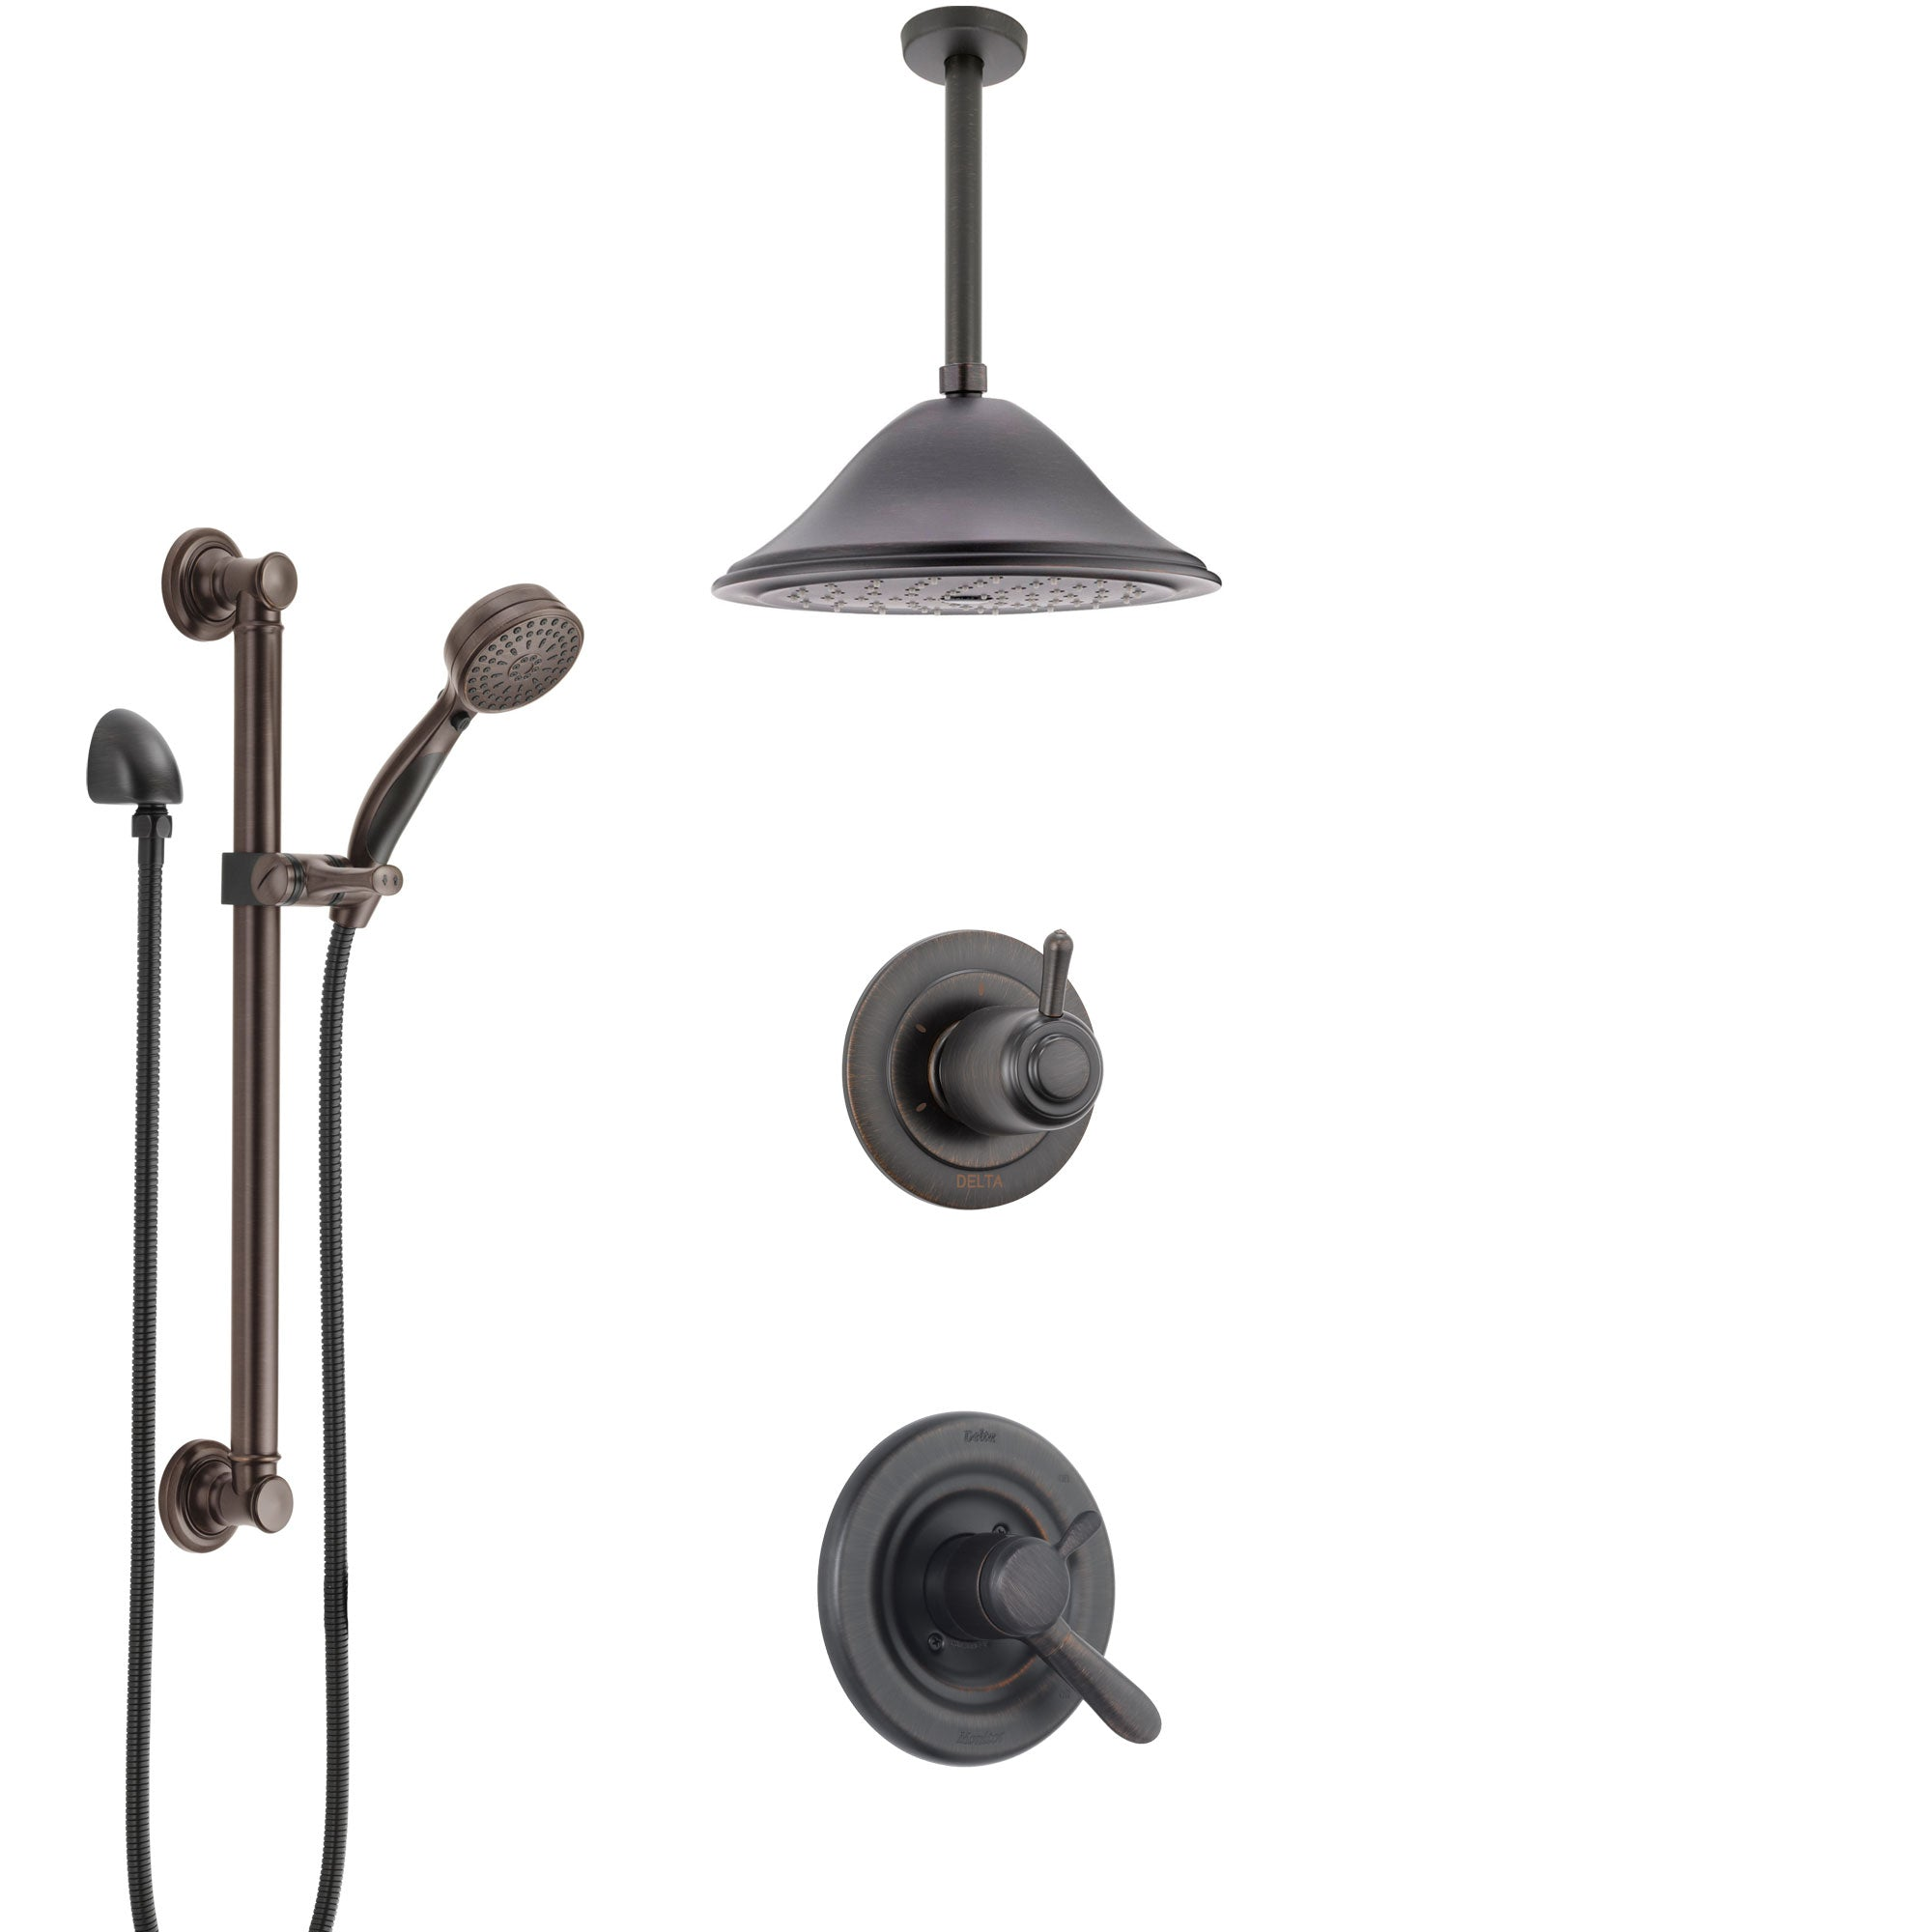 Delta Lahara Venetian Bronze Shower System with Dual Control Handle, Diverter, Ceiling Mount Showerhead, and Hand Shower with Grab Bar SS1738RB8